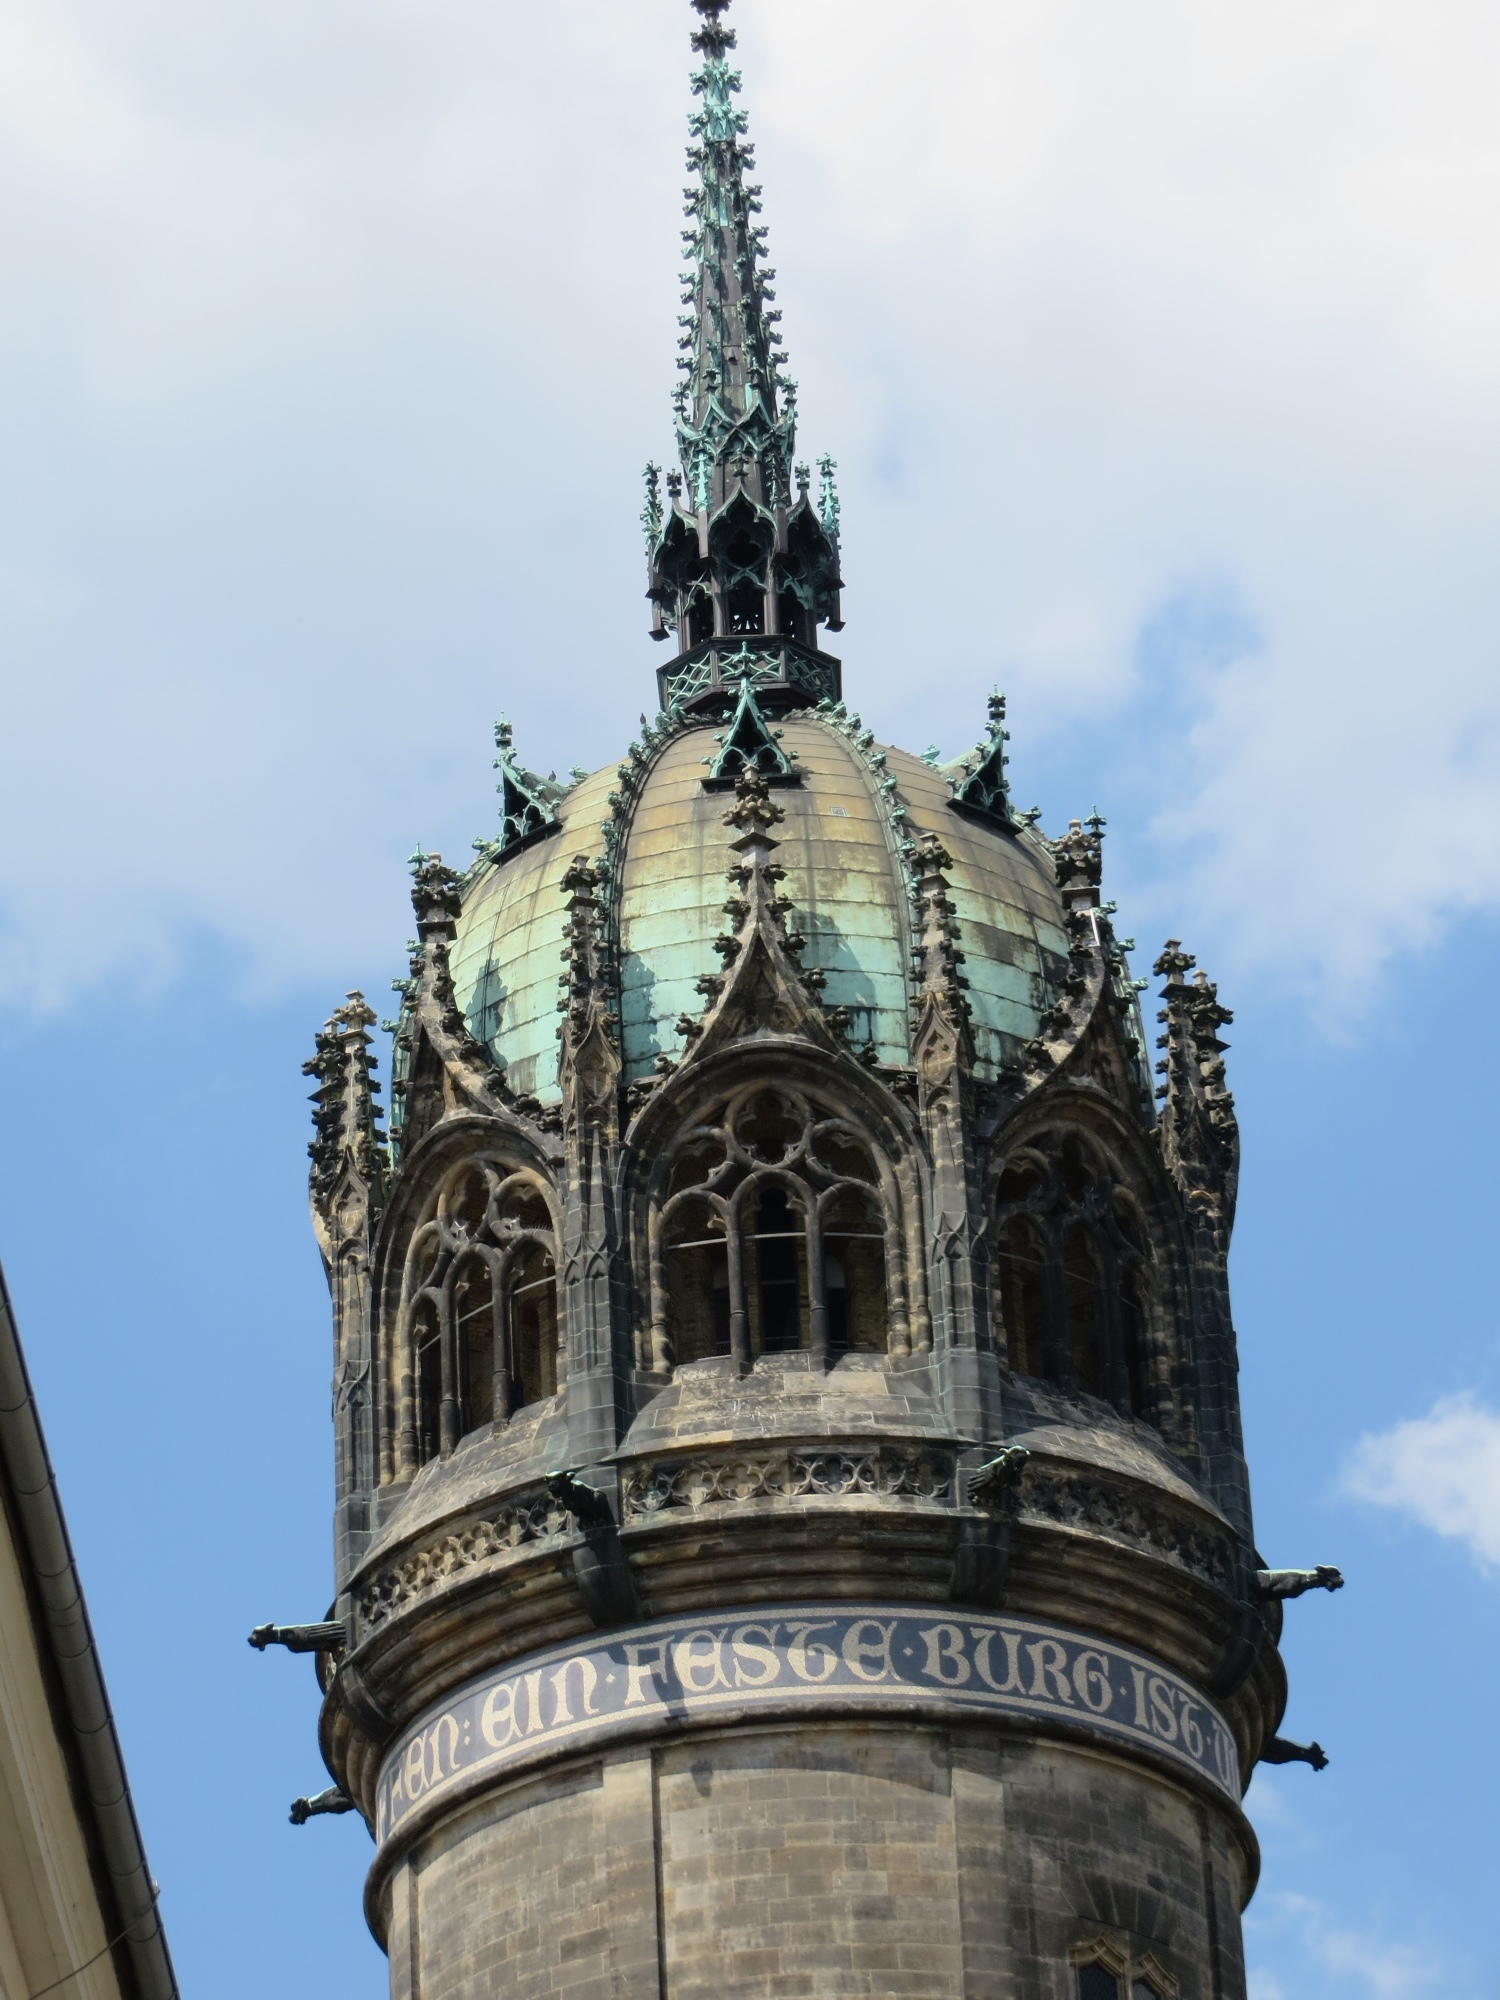 Dome on the Tower of the Castle Church, Wittenberg. Text of luther's famous hymn visible beneath cap